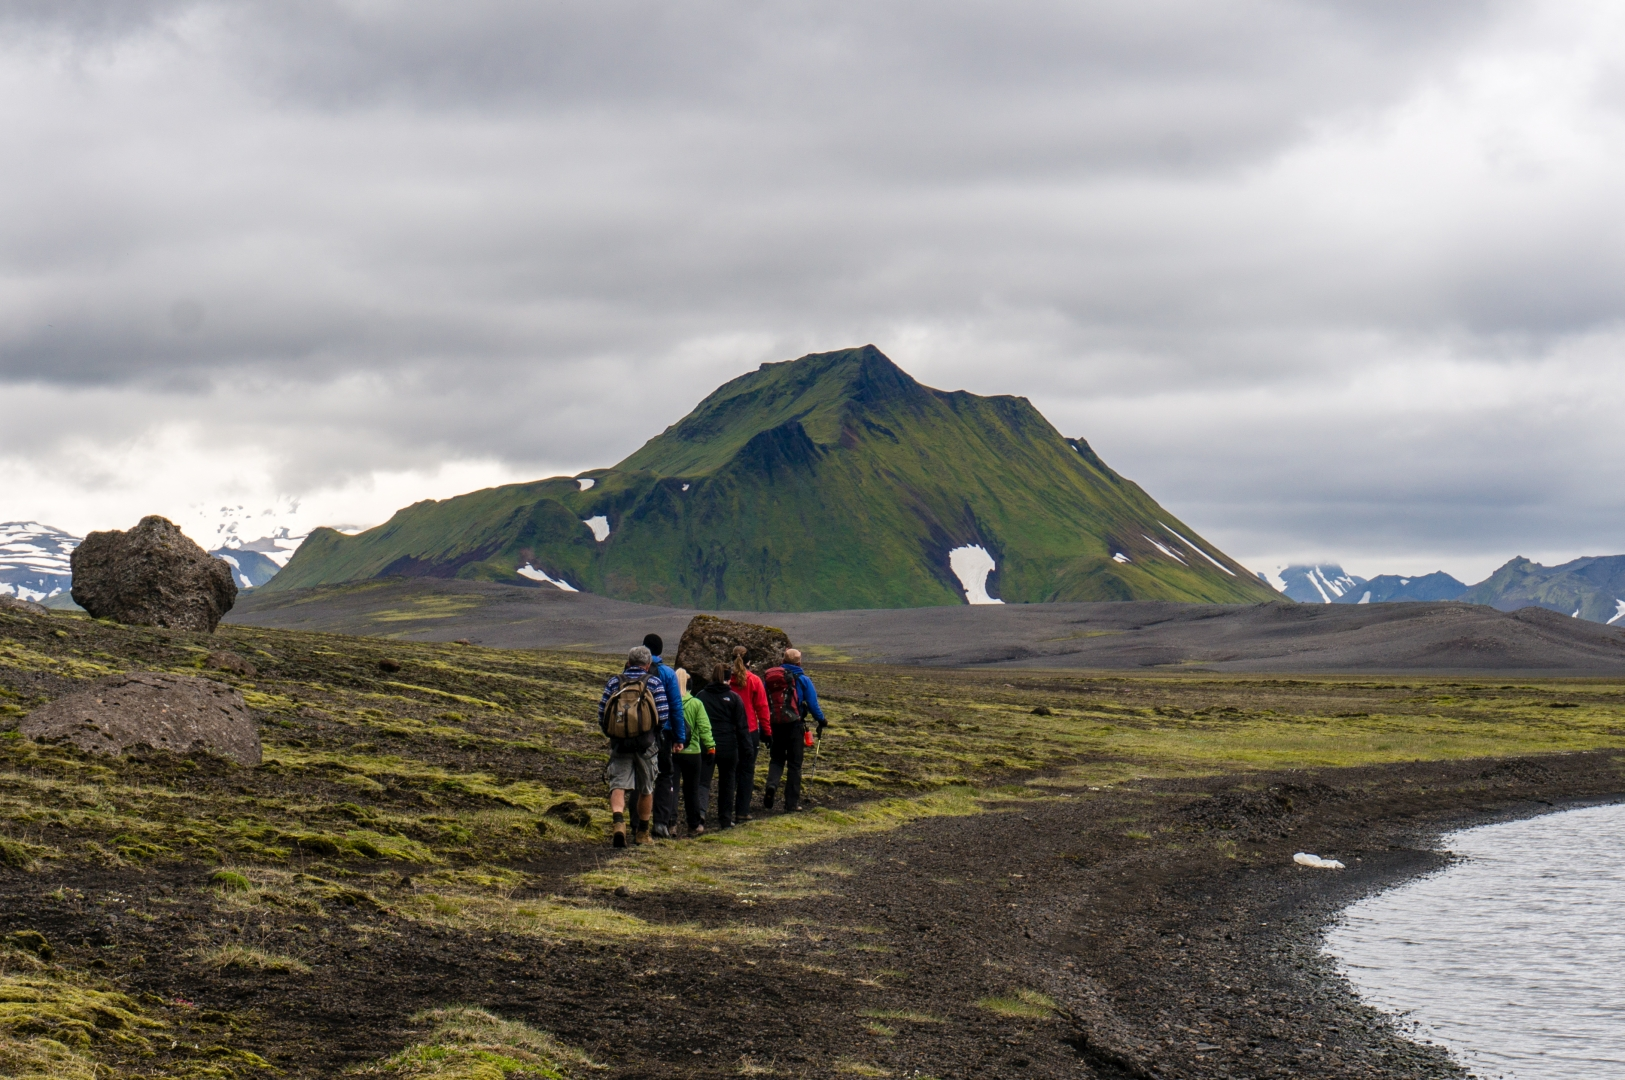 A hiking group in the highlands on the edge of Áltavatn, the Swan Lake.